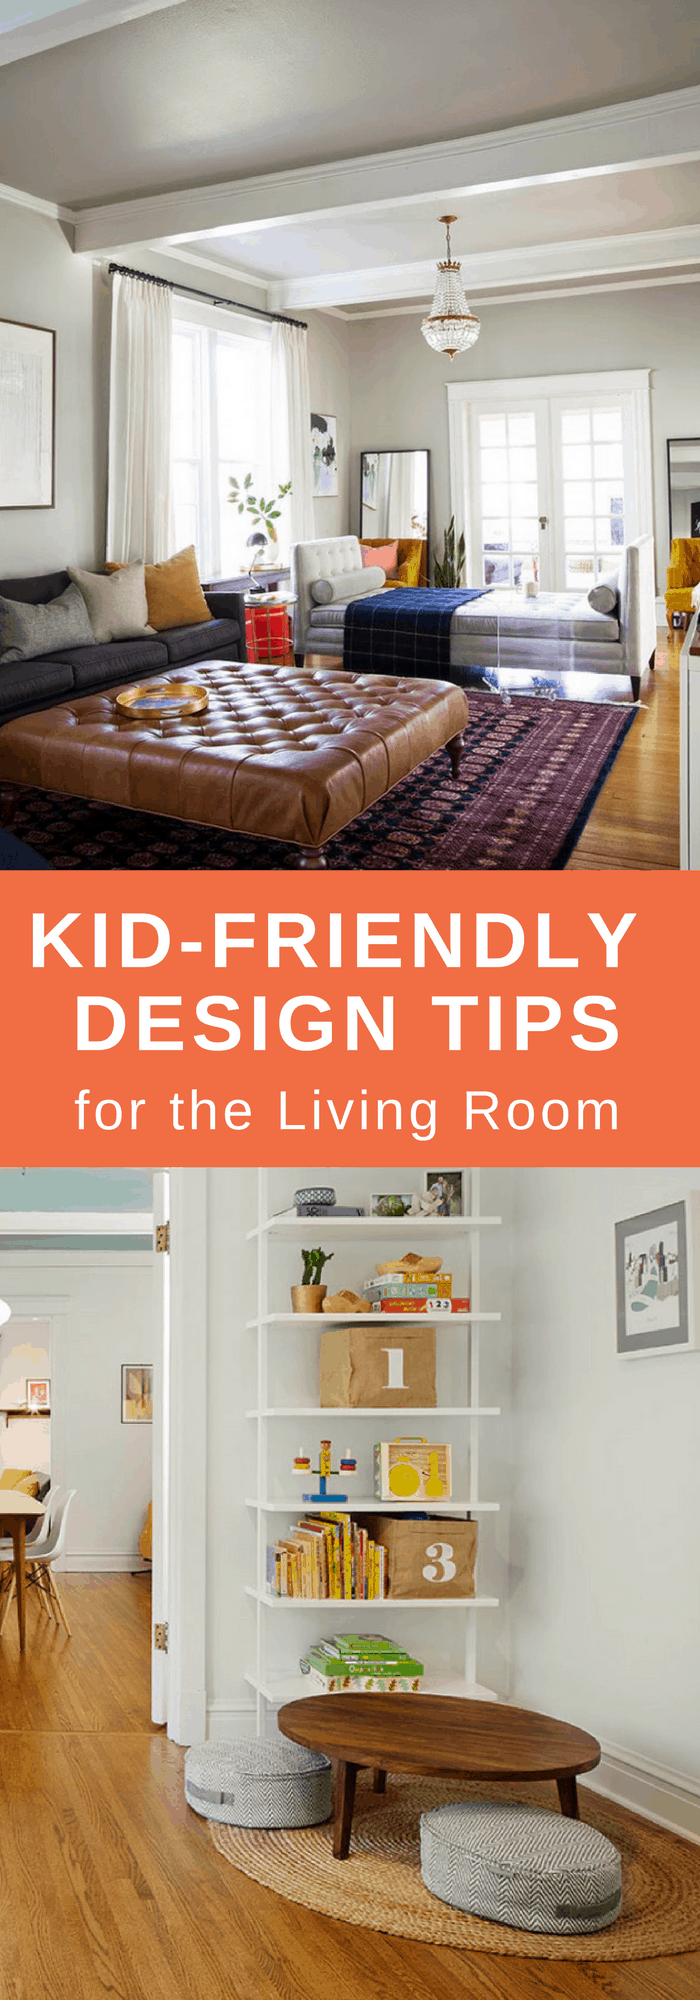 Decorating-Kid Friendly Design Tips-The Organized Mom